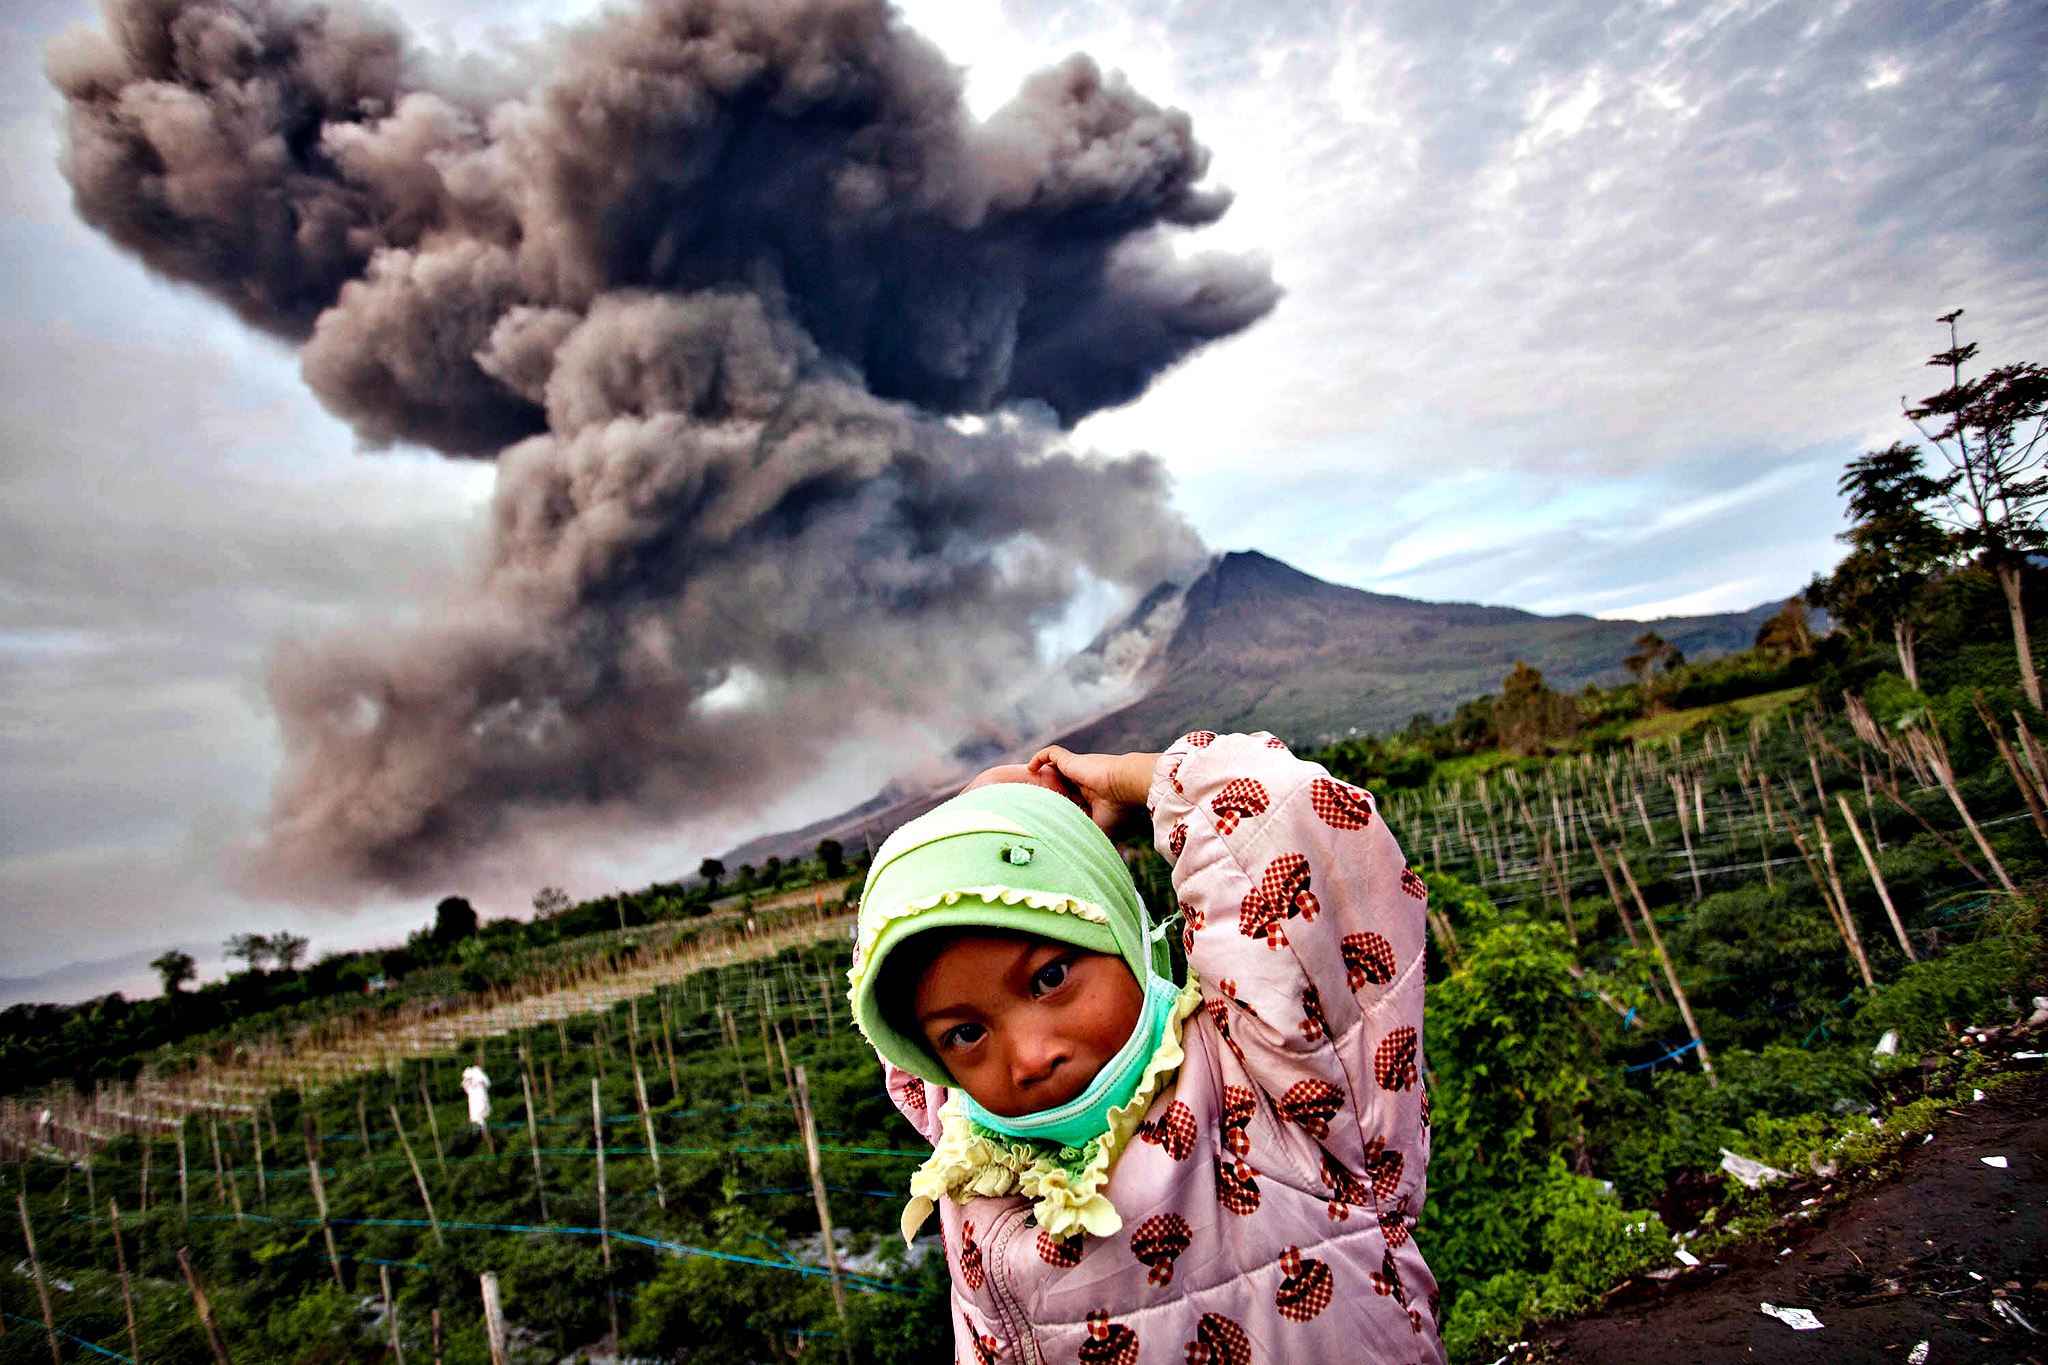 A girl stands in the foreground as Mount Sinabung spews pyroclastic smoke on January 8, 2014 in Karo District, North Sumatra, Indonesia. The number of displaced people has increased to 22,000 in Western Indonesia as Mount Sinabung continues to spew ash and smoke after several eruptions since September. Eleven deaths have now been recorded as a result of the eruptions with hundreds more falling ill. Officials expect the number of evacuees to rise as volcanic activity remains high.